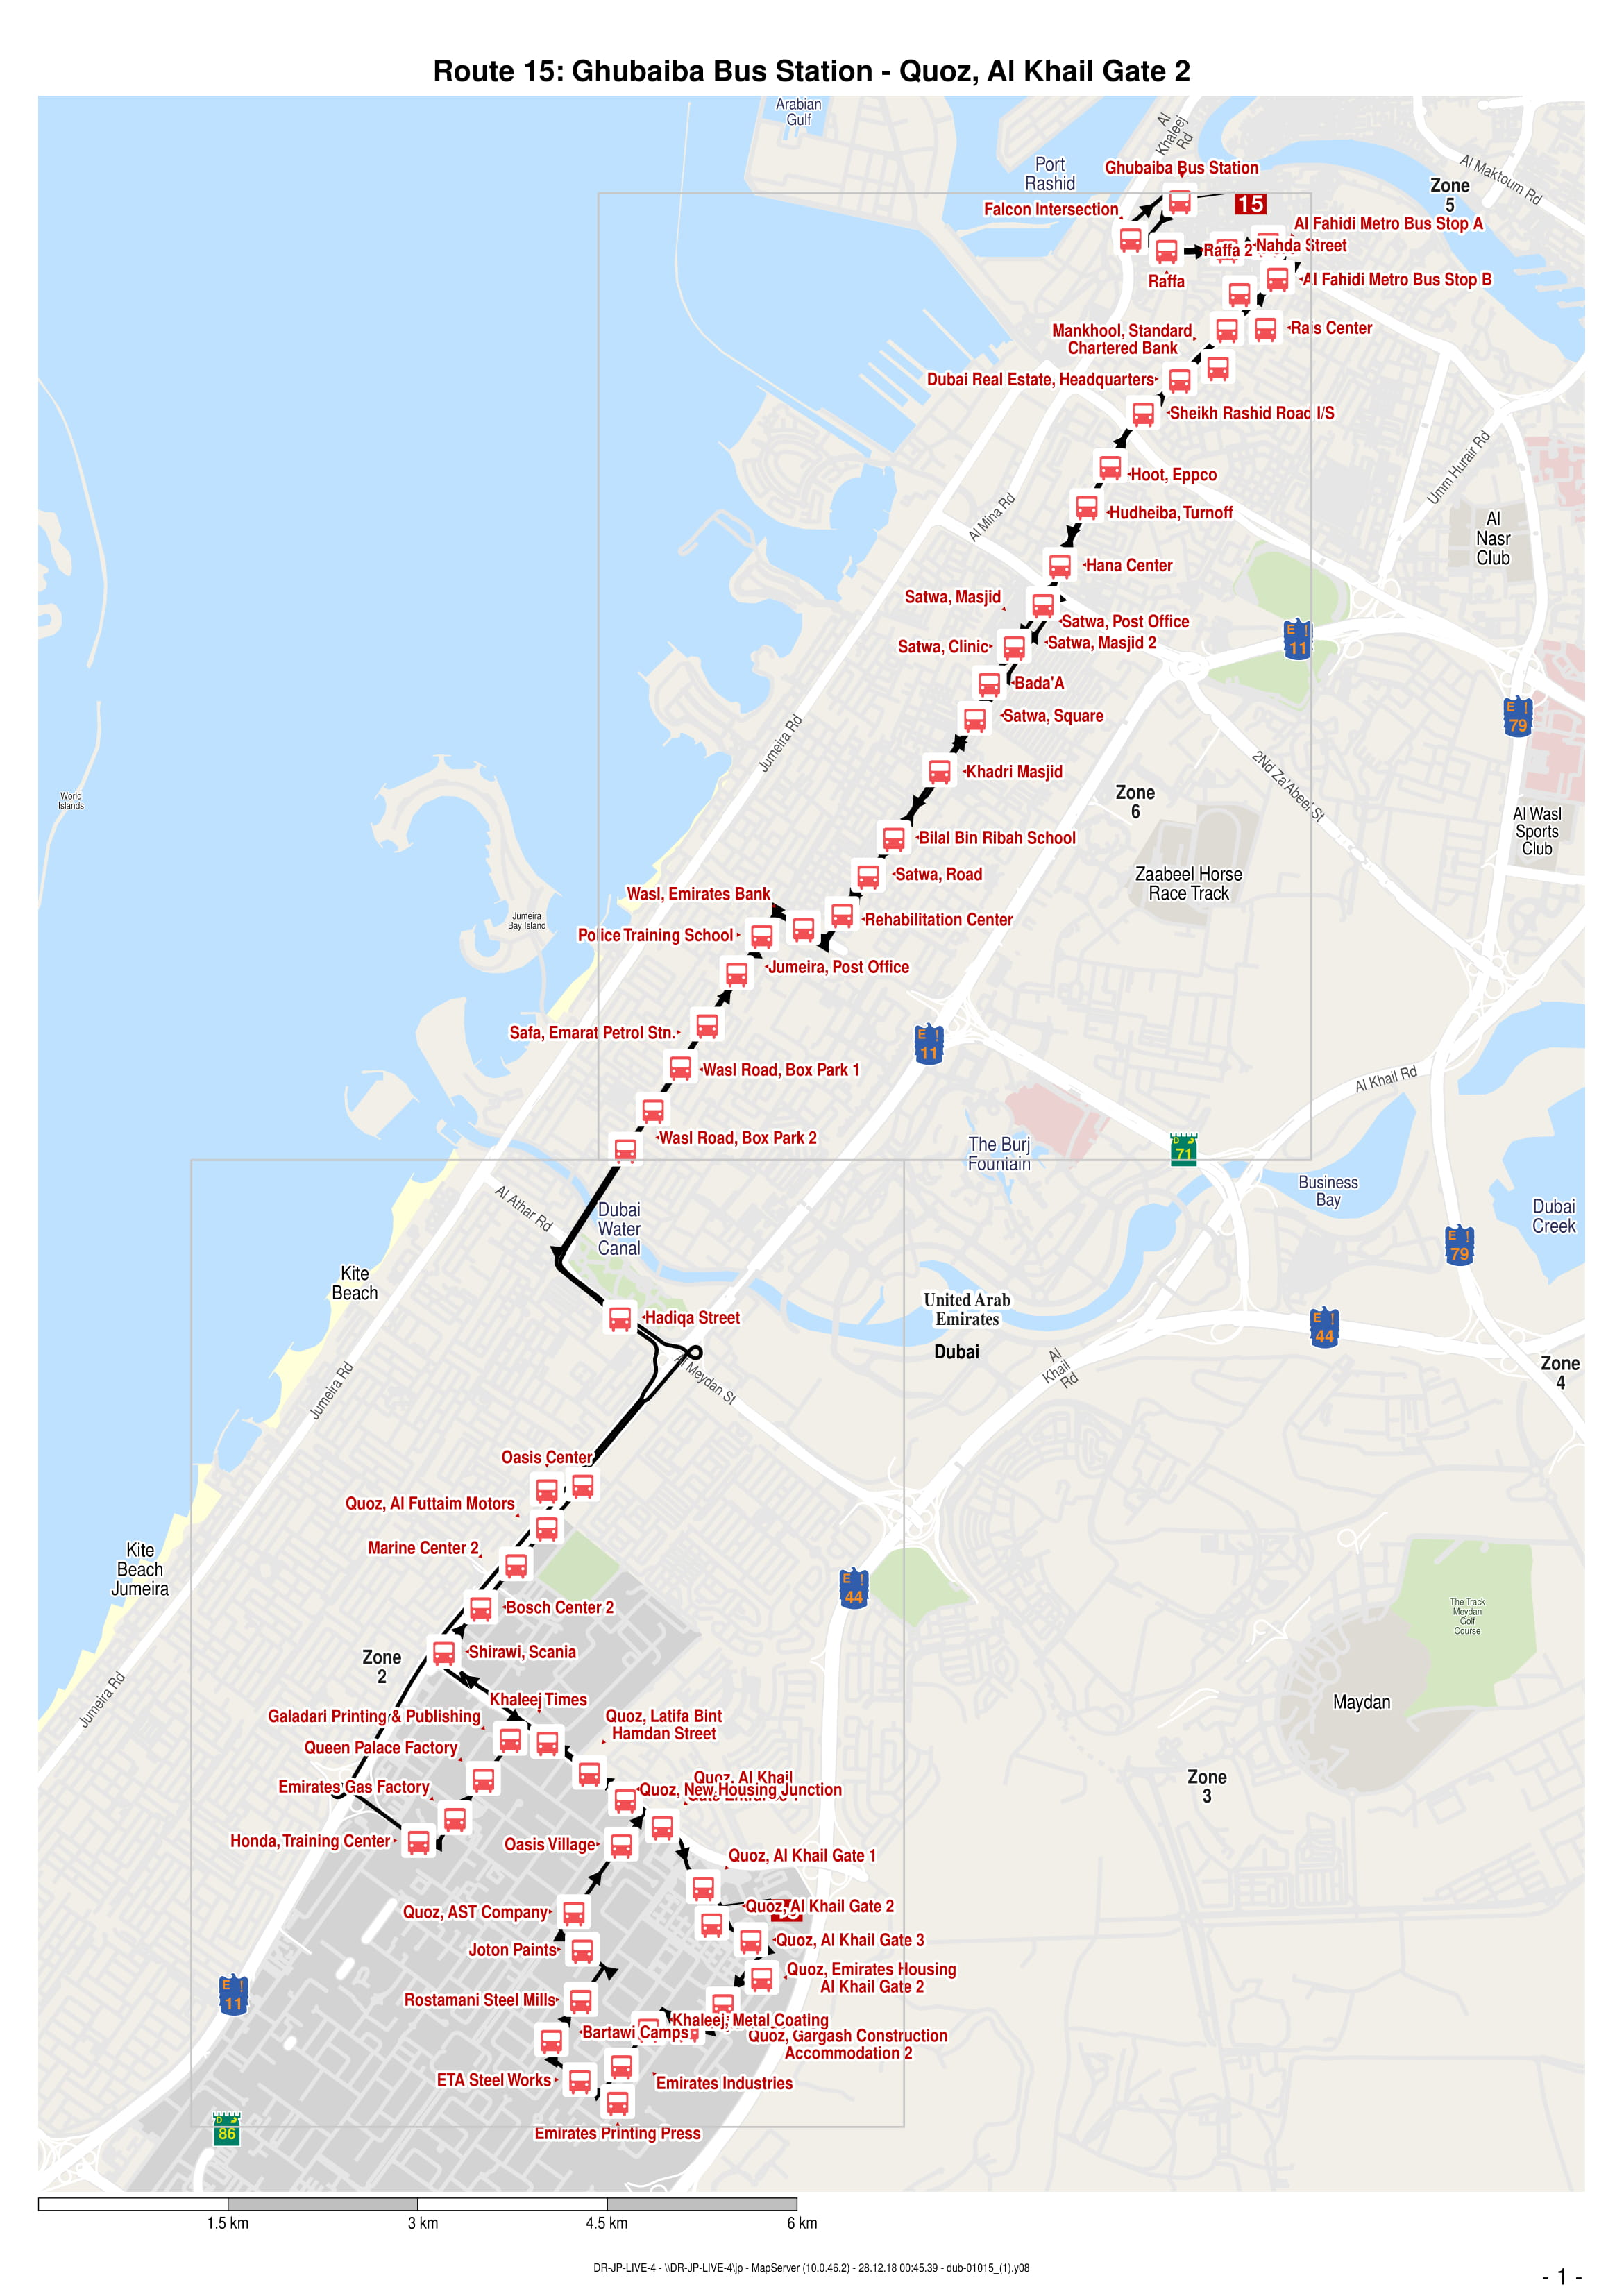 15 Bus Route in Dubai - Time Schedule, Stops and Maps - Your